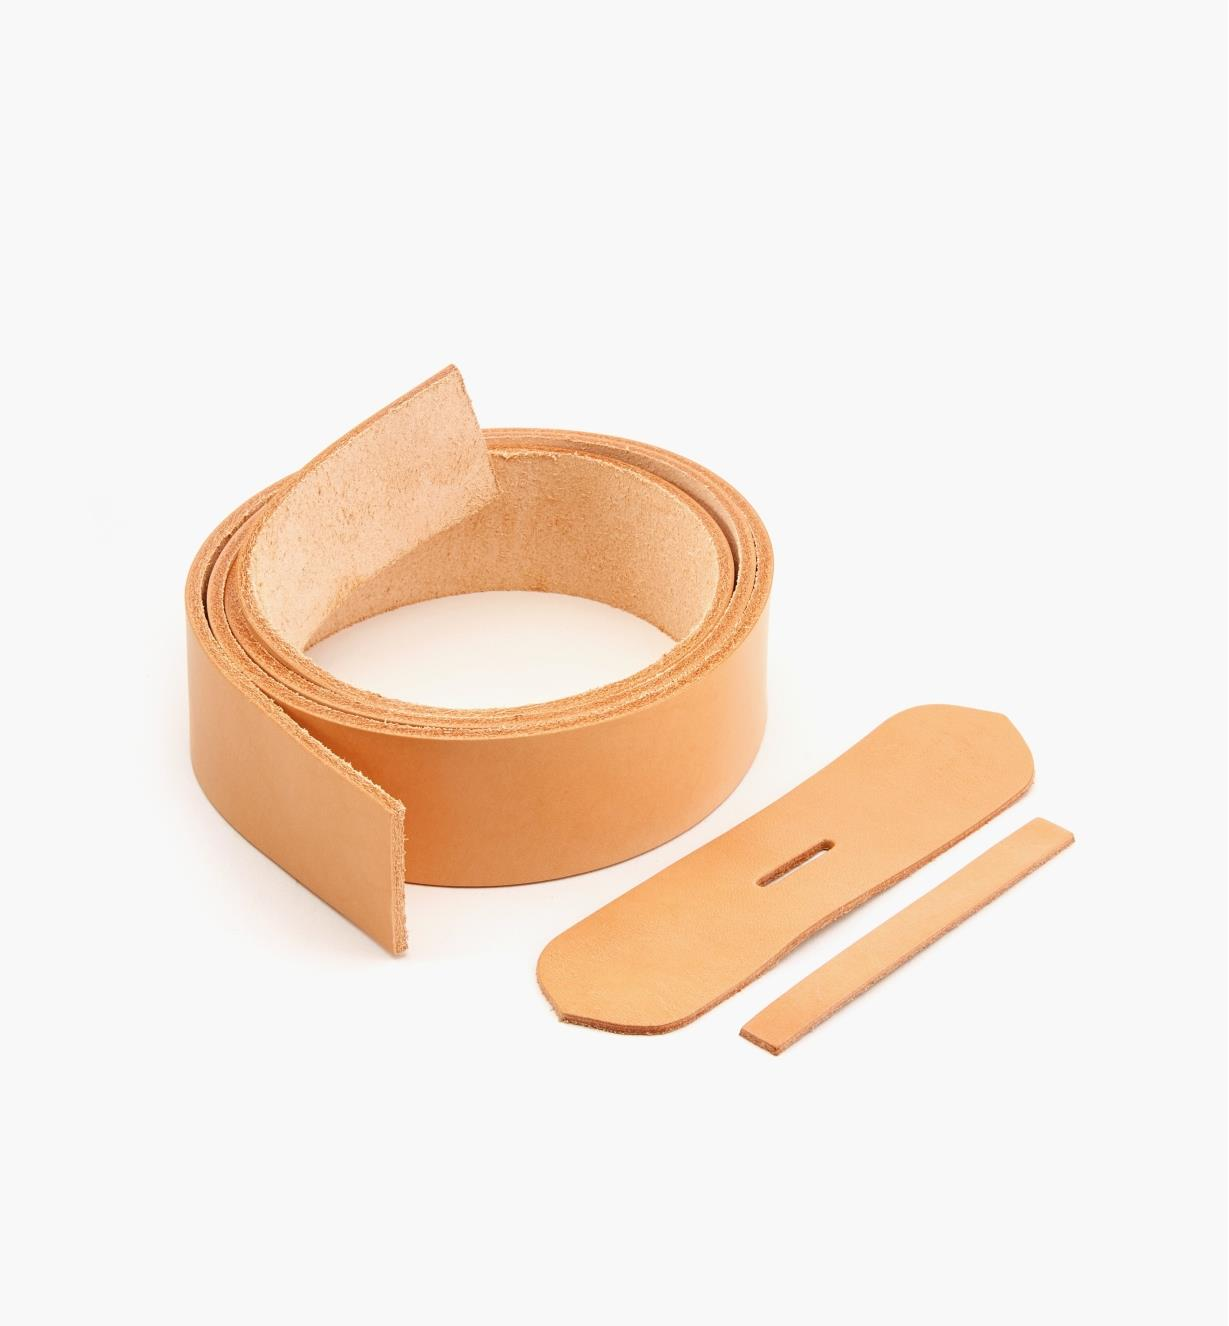 97K0940 - Natural Leather Belt Kit